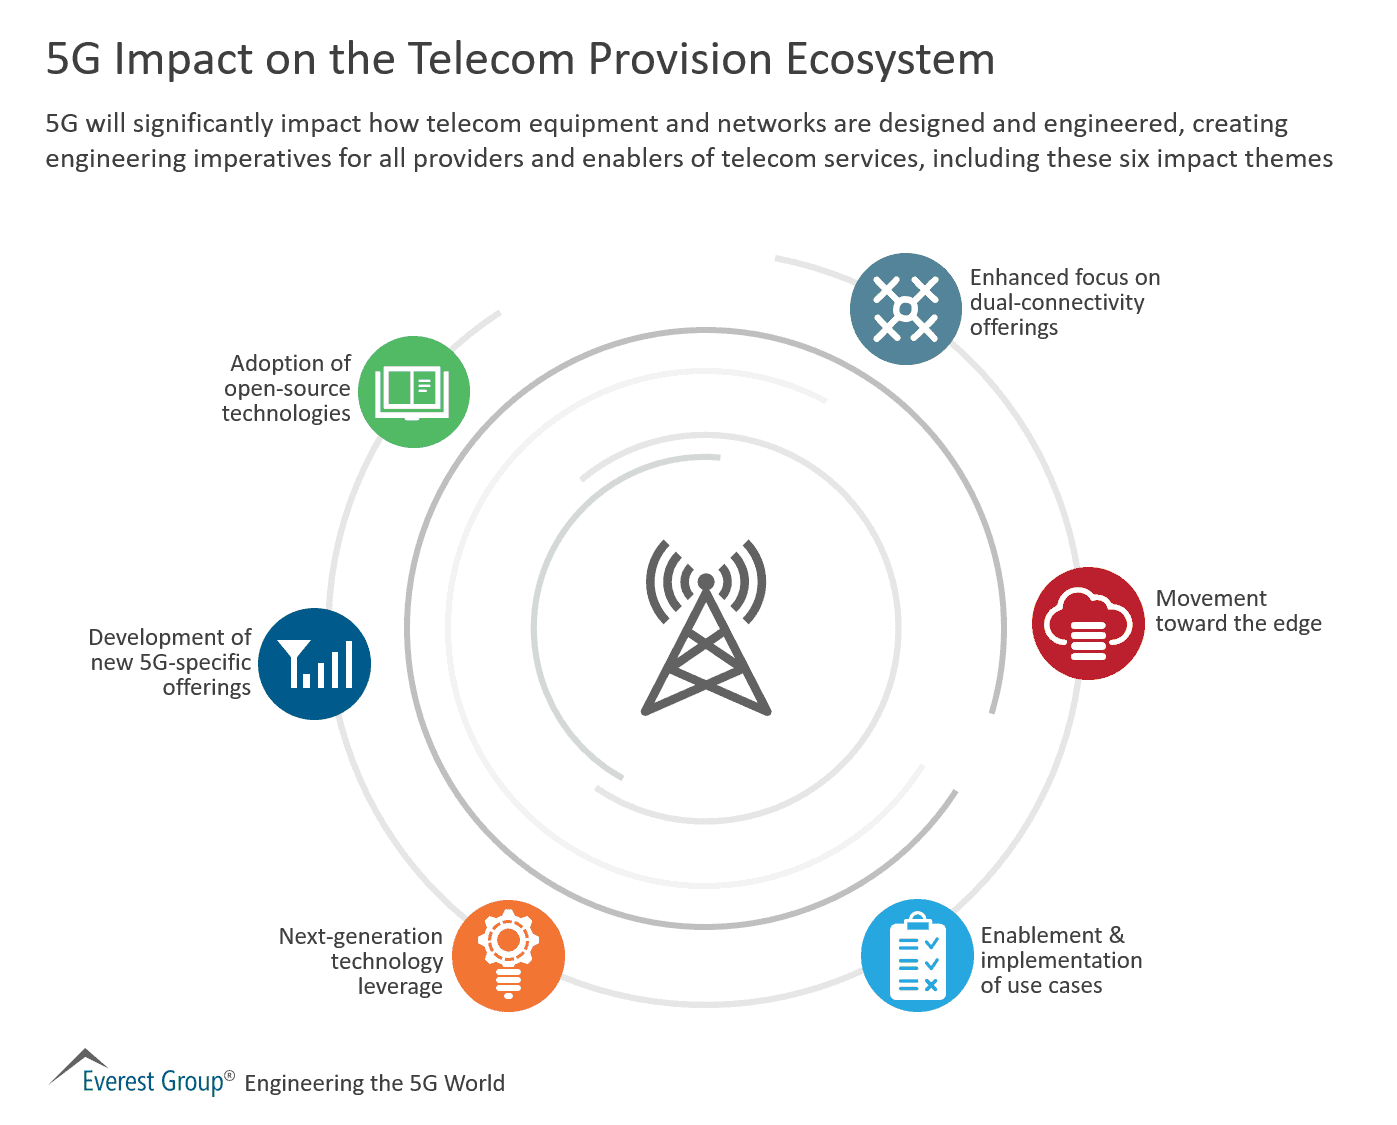 5G Impact on the Telecom Provision Ecosystem